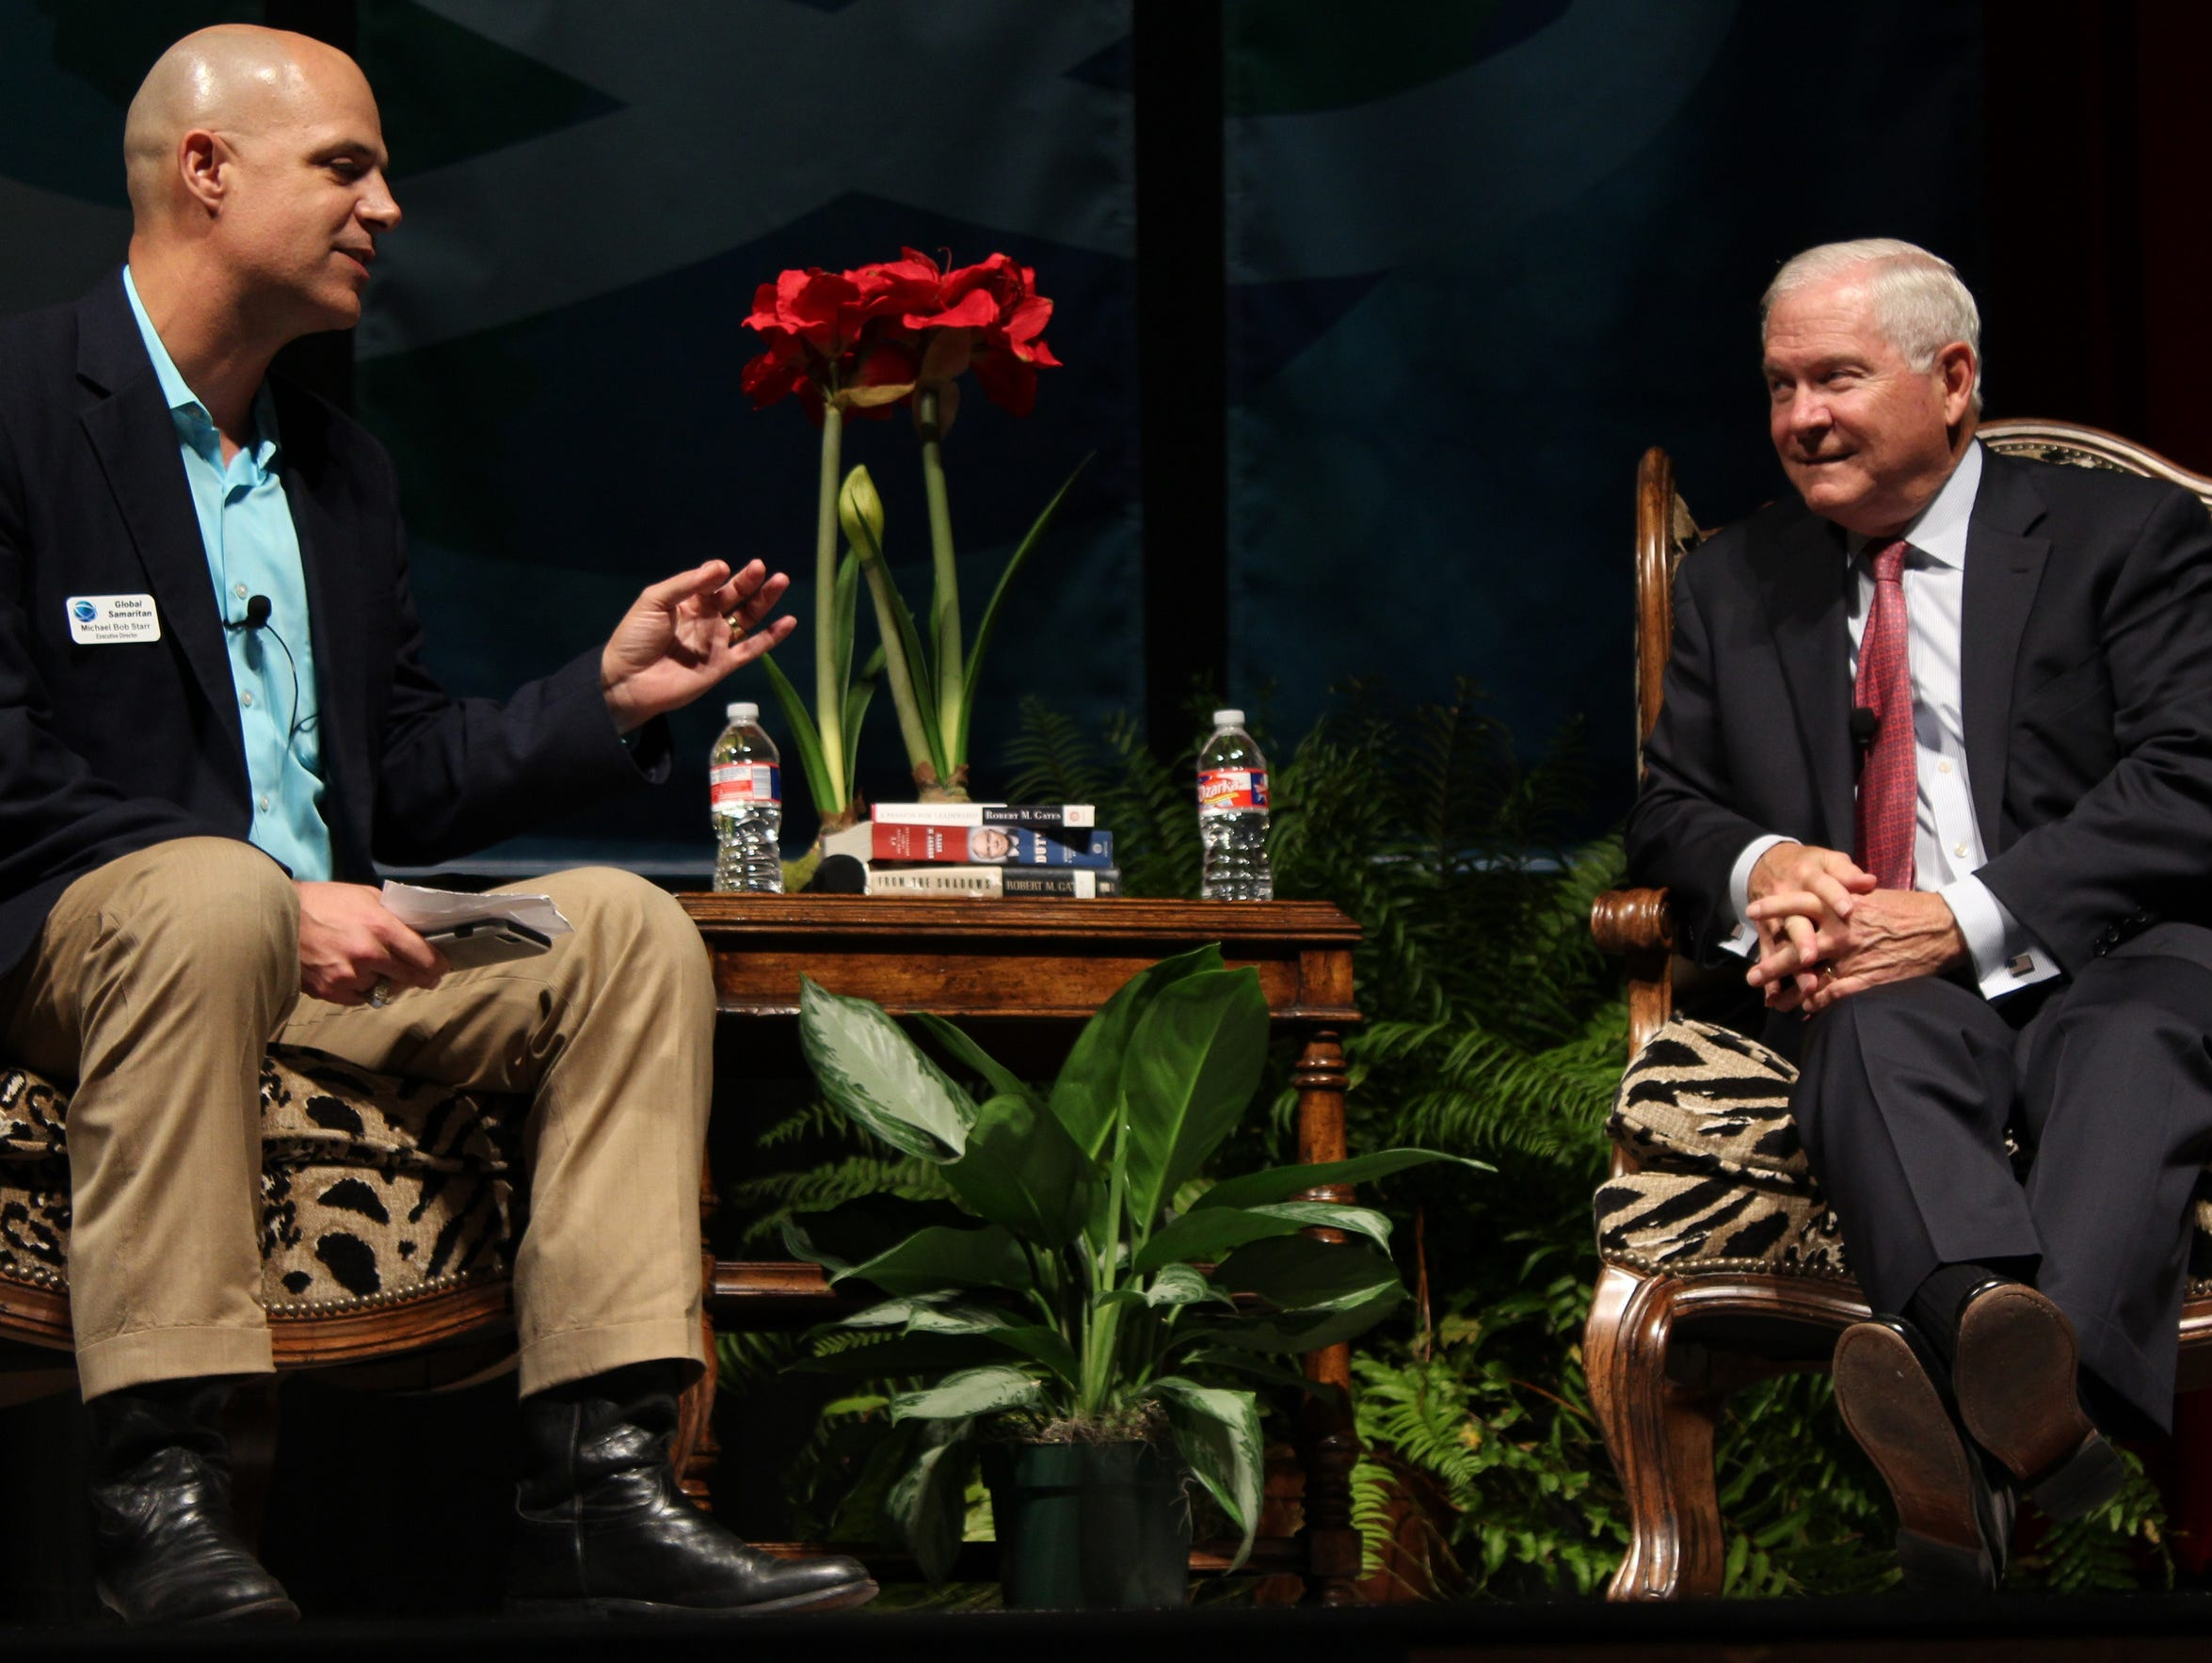 Robert Gates, right, is interviewed by Global Samaritan Resources Executive Director Michael Bob Starr during a fundraiser at the Abilene Convention Center.